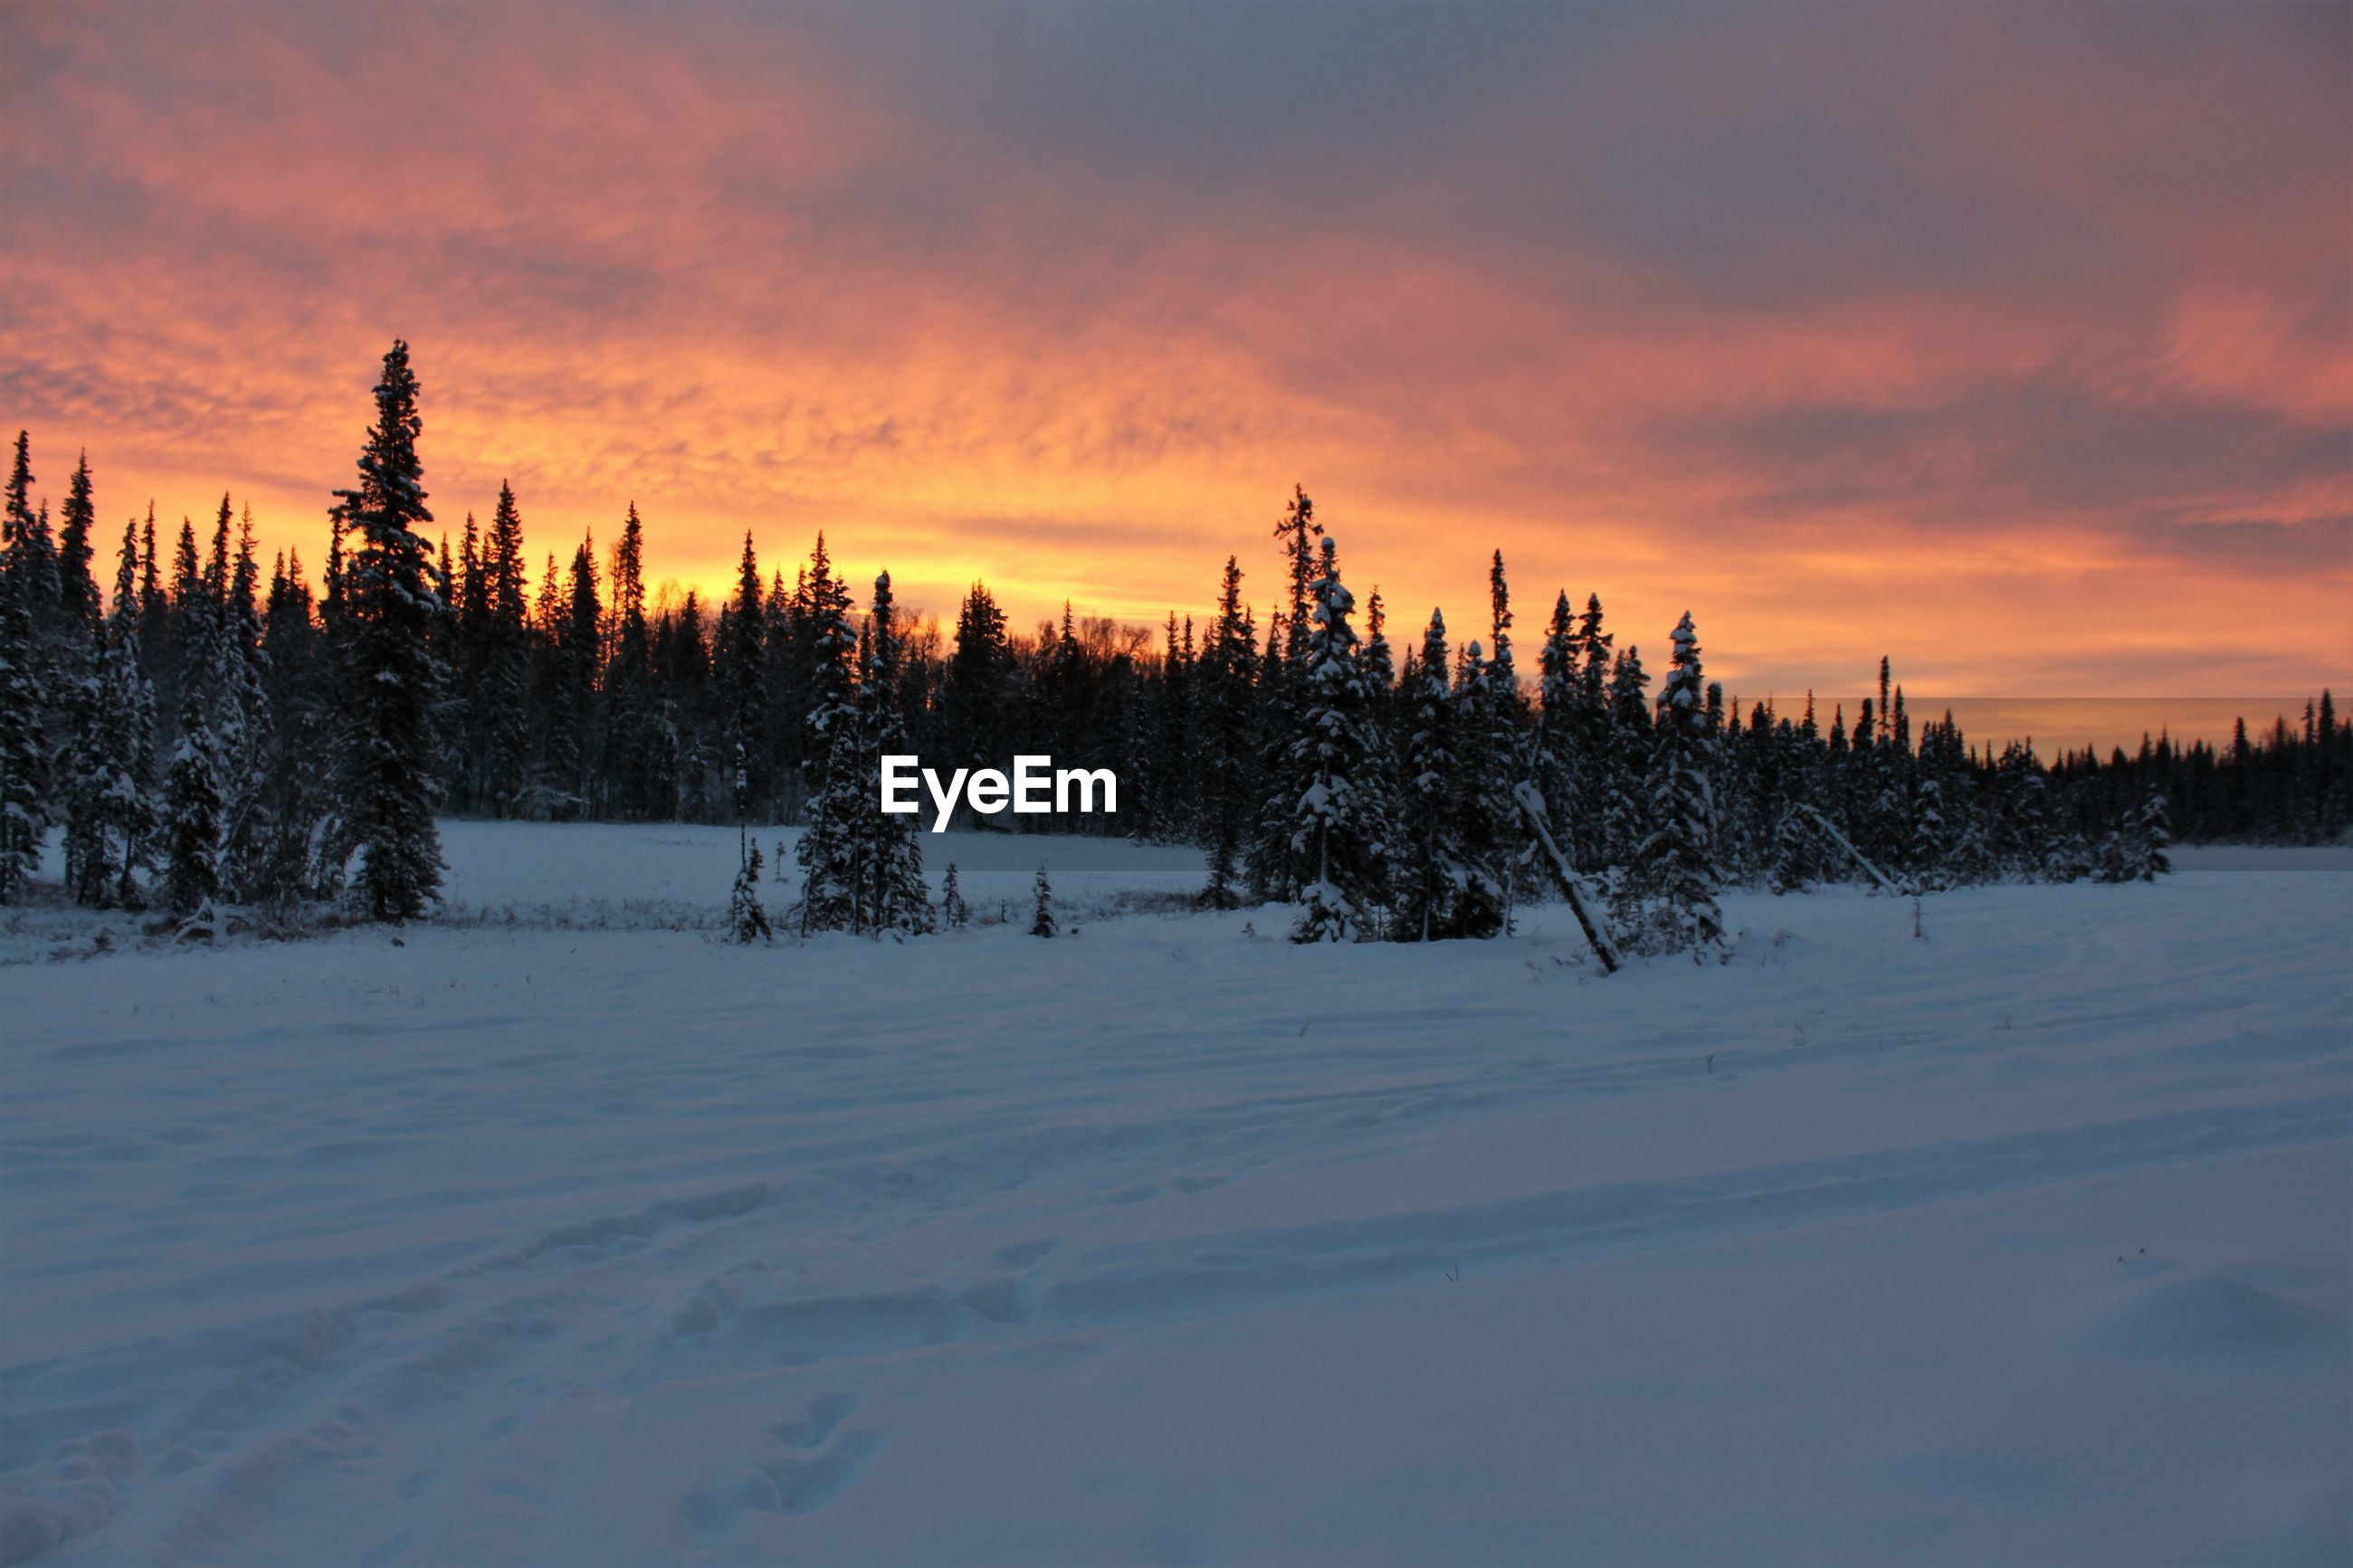 PINE TREES ON SNOW COVERED LAND DURING SUNSET